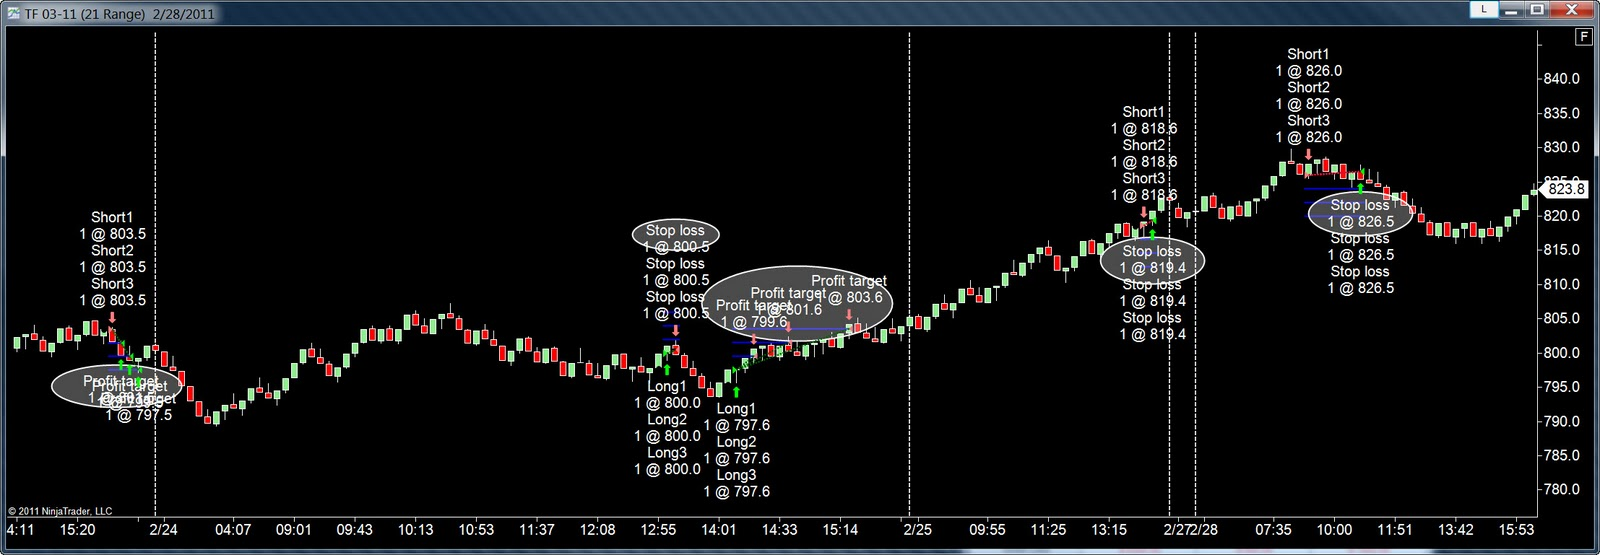 Auto trading system reviews